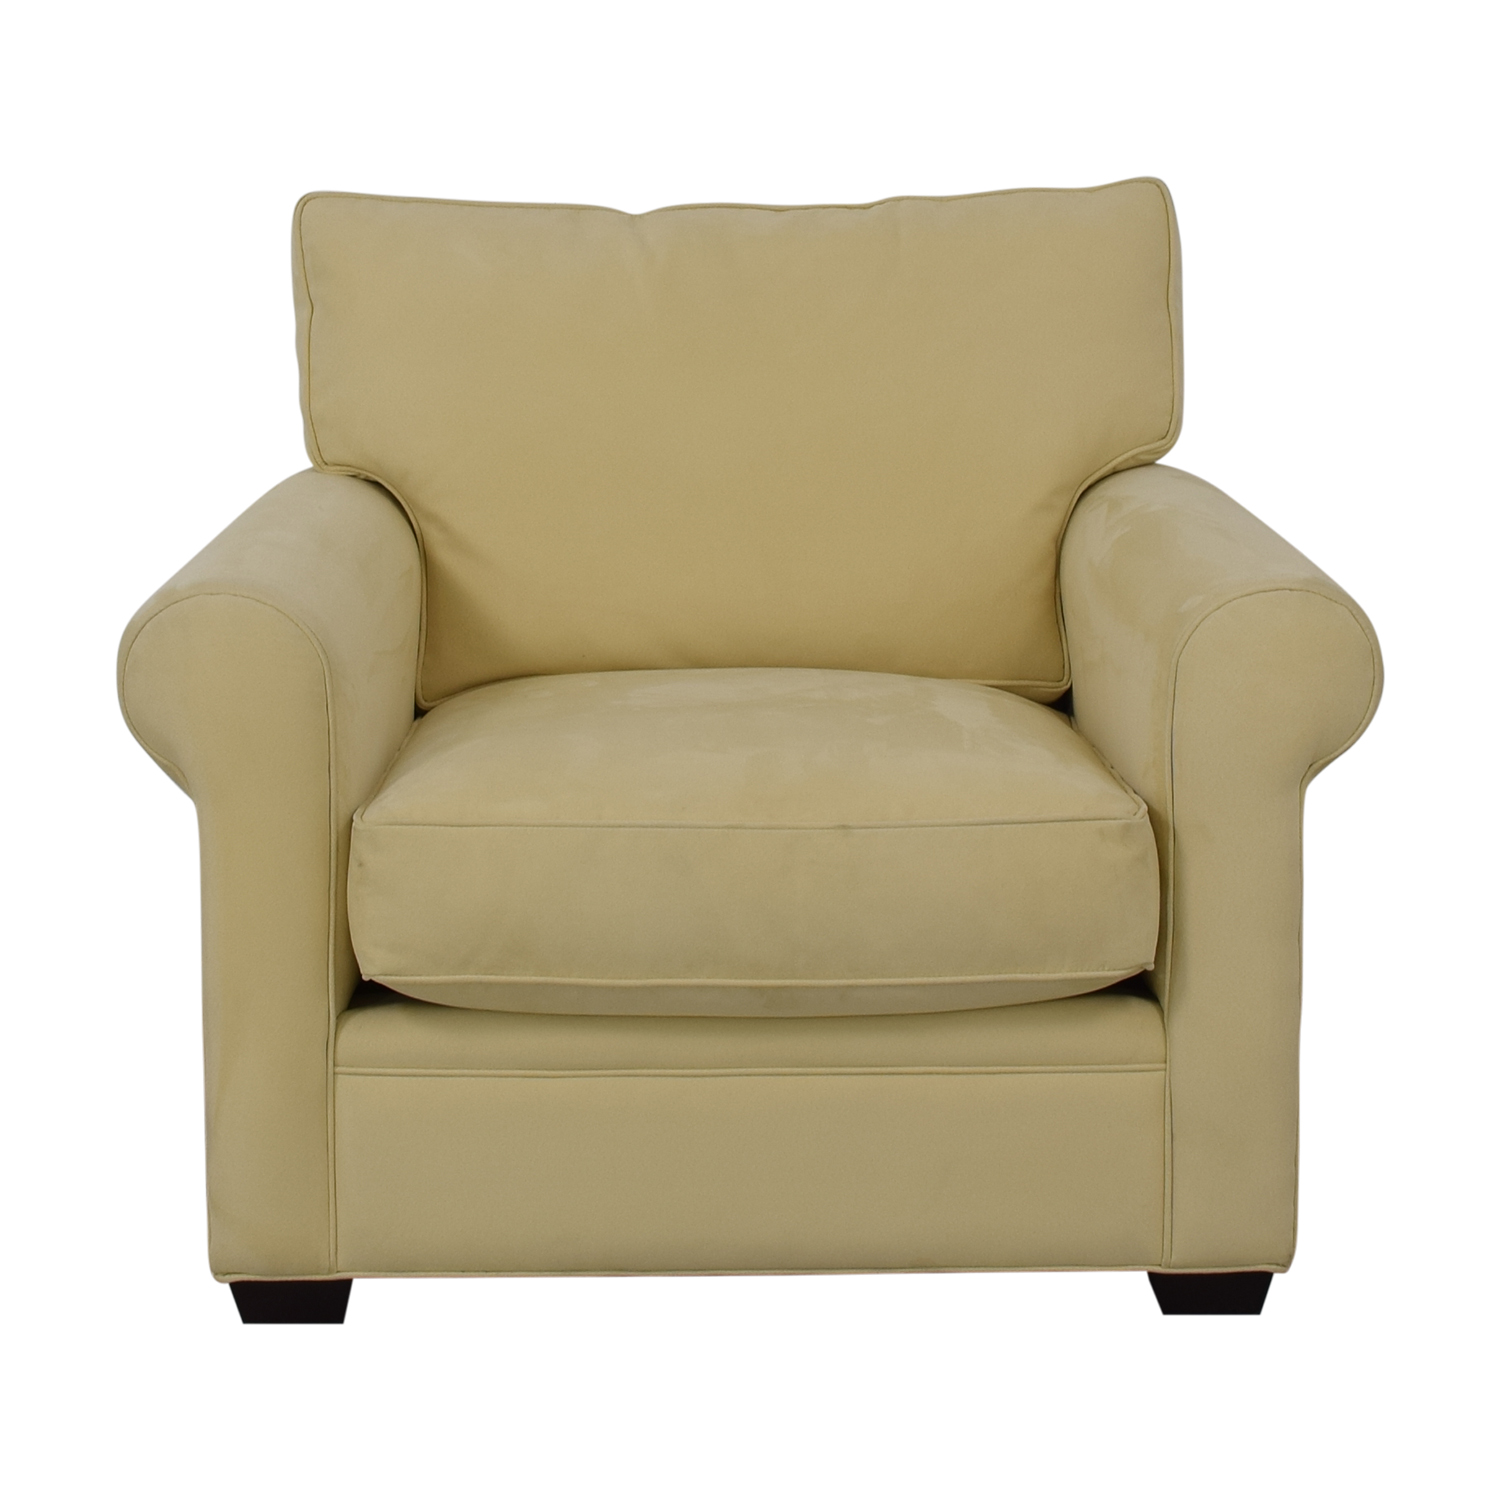 Crate & Barrel Crate & Barrel Yellow Oversized Accent Chair nyc